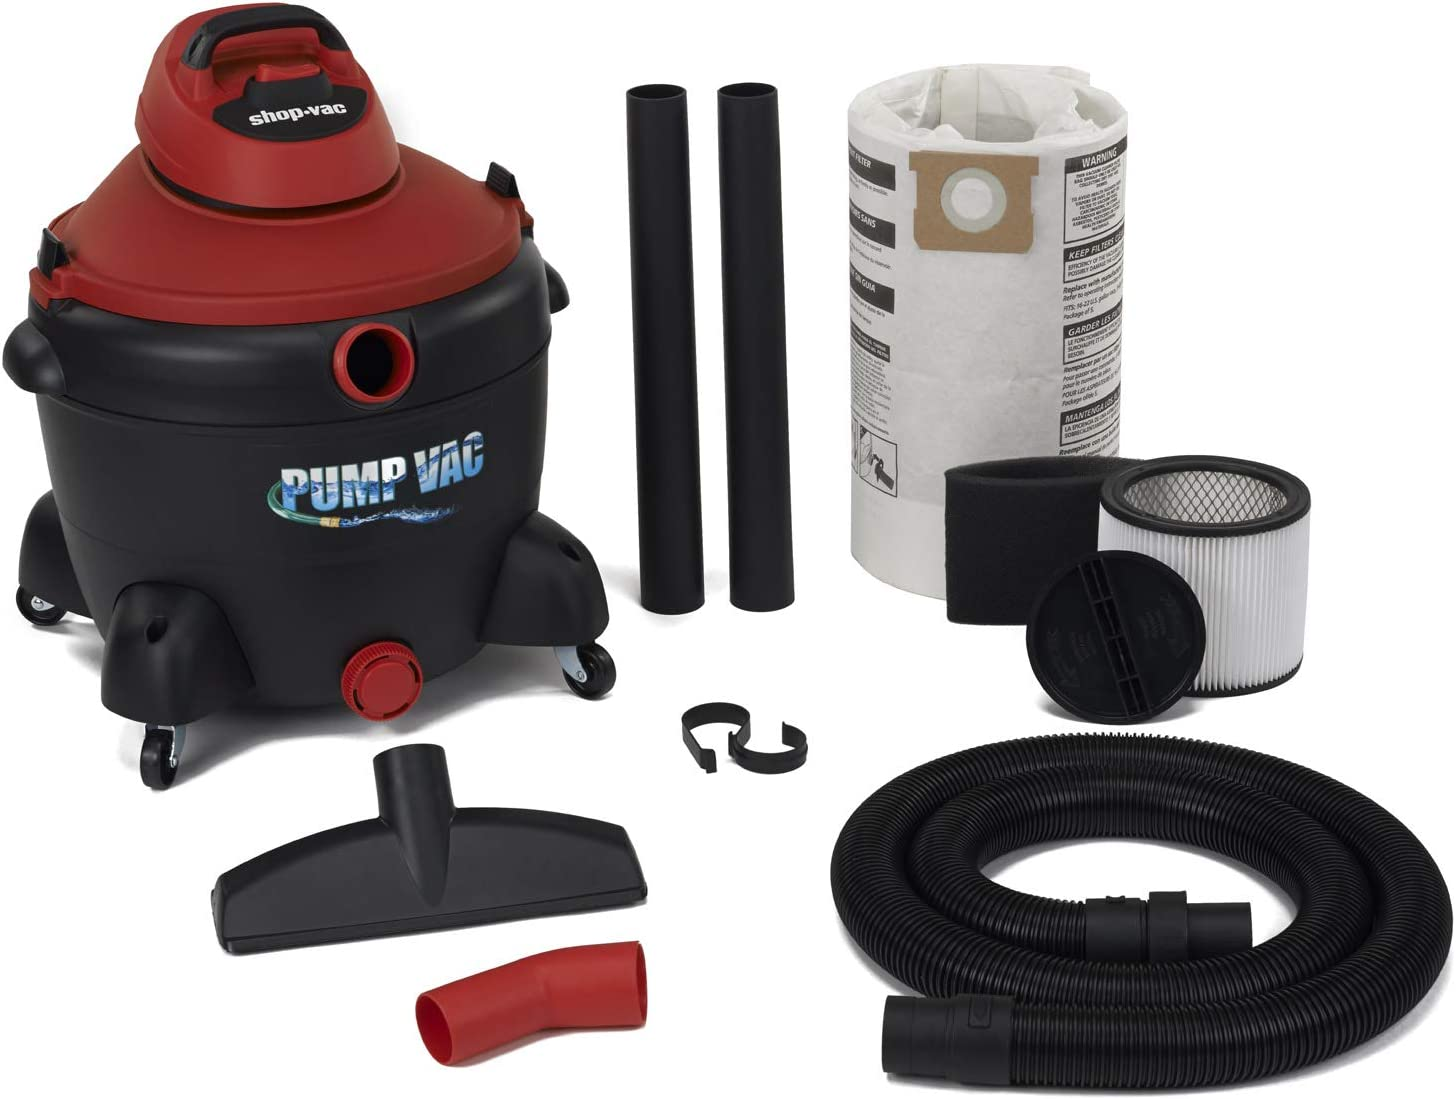 Shop Vac 5821600 16 Gal 6.0 PHP Wet Dry Vacuum with built in Pump will pump out with garden hose. Uses Type U Cartridge, Type R Foam plus Type G Filter Bag